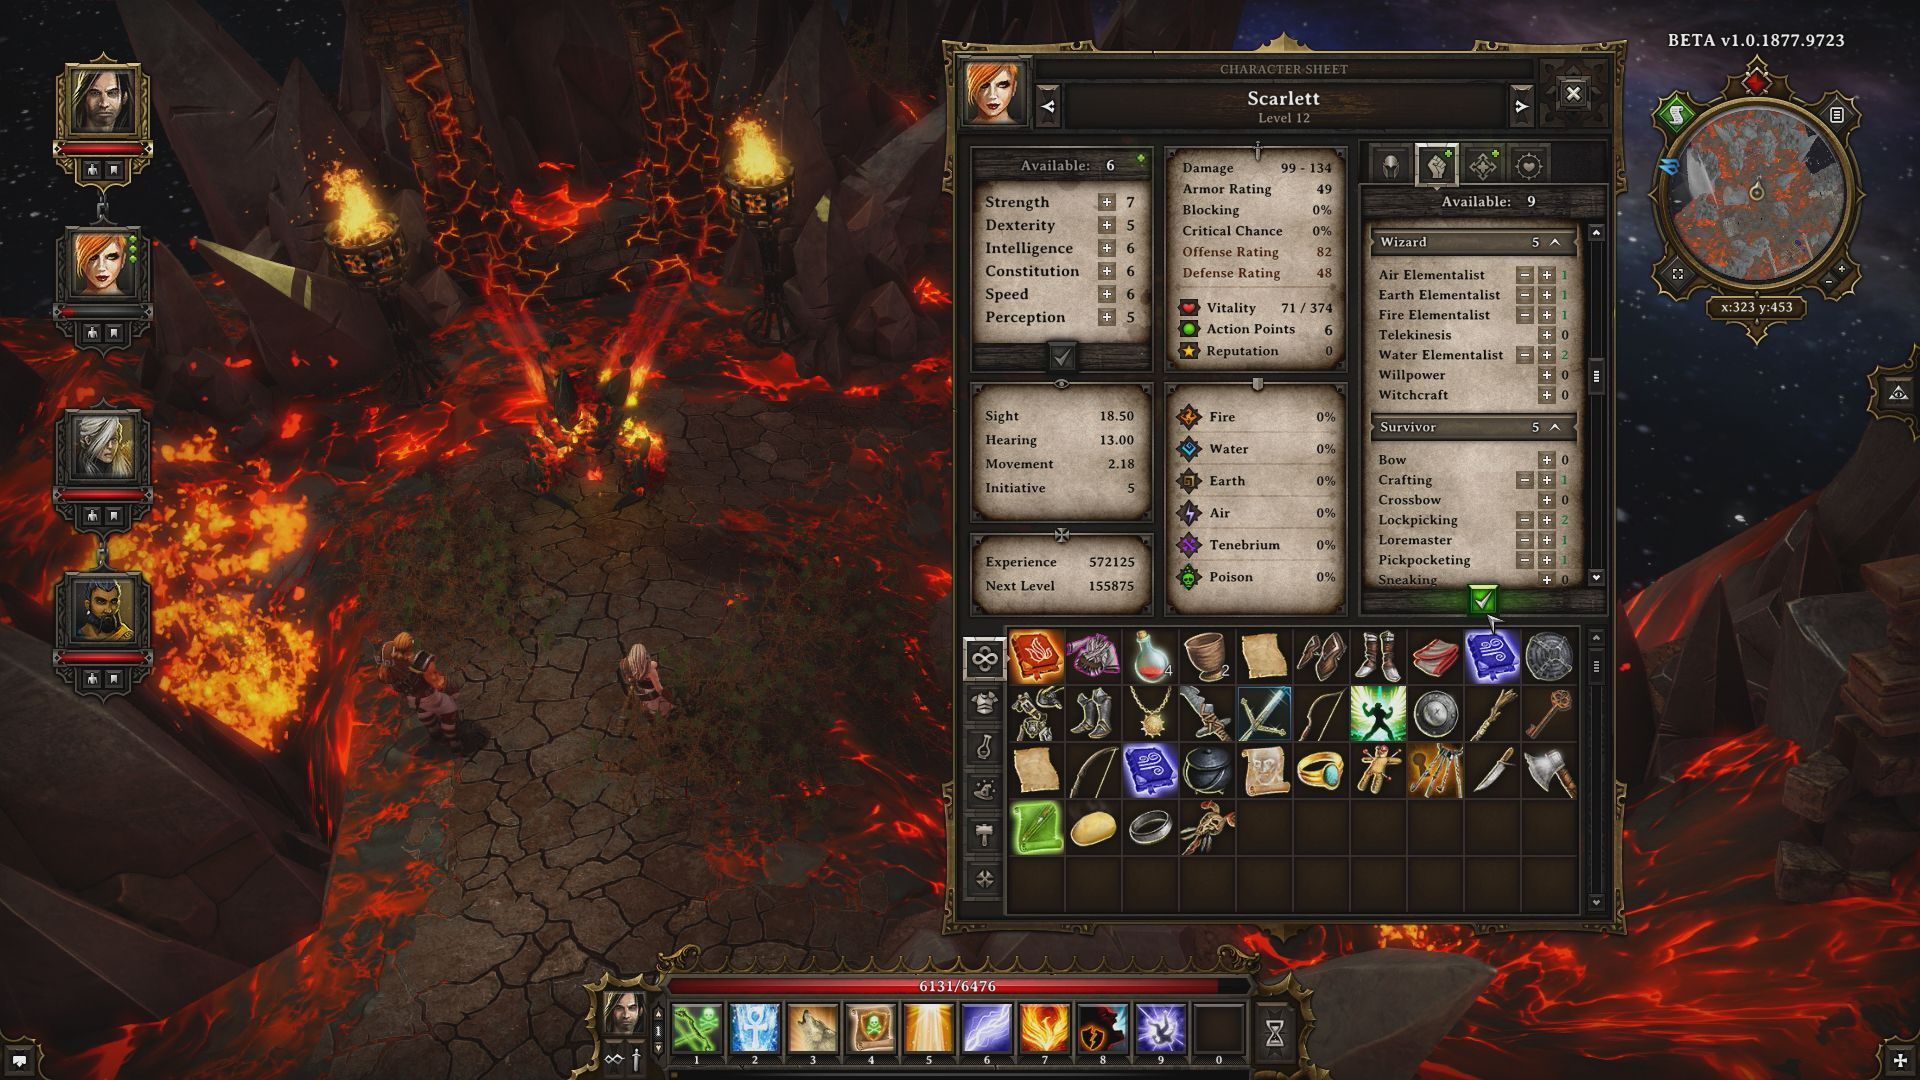 Pin by O C T on Game UI | Hard Core | Divinity original sin